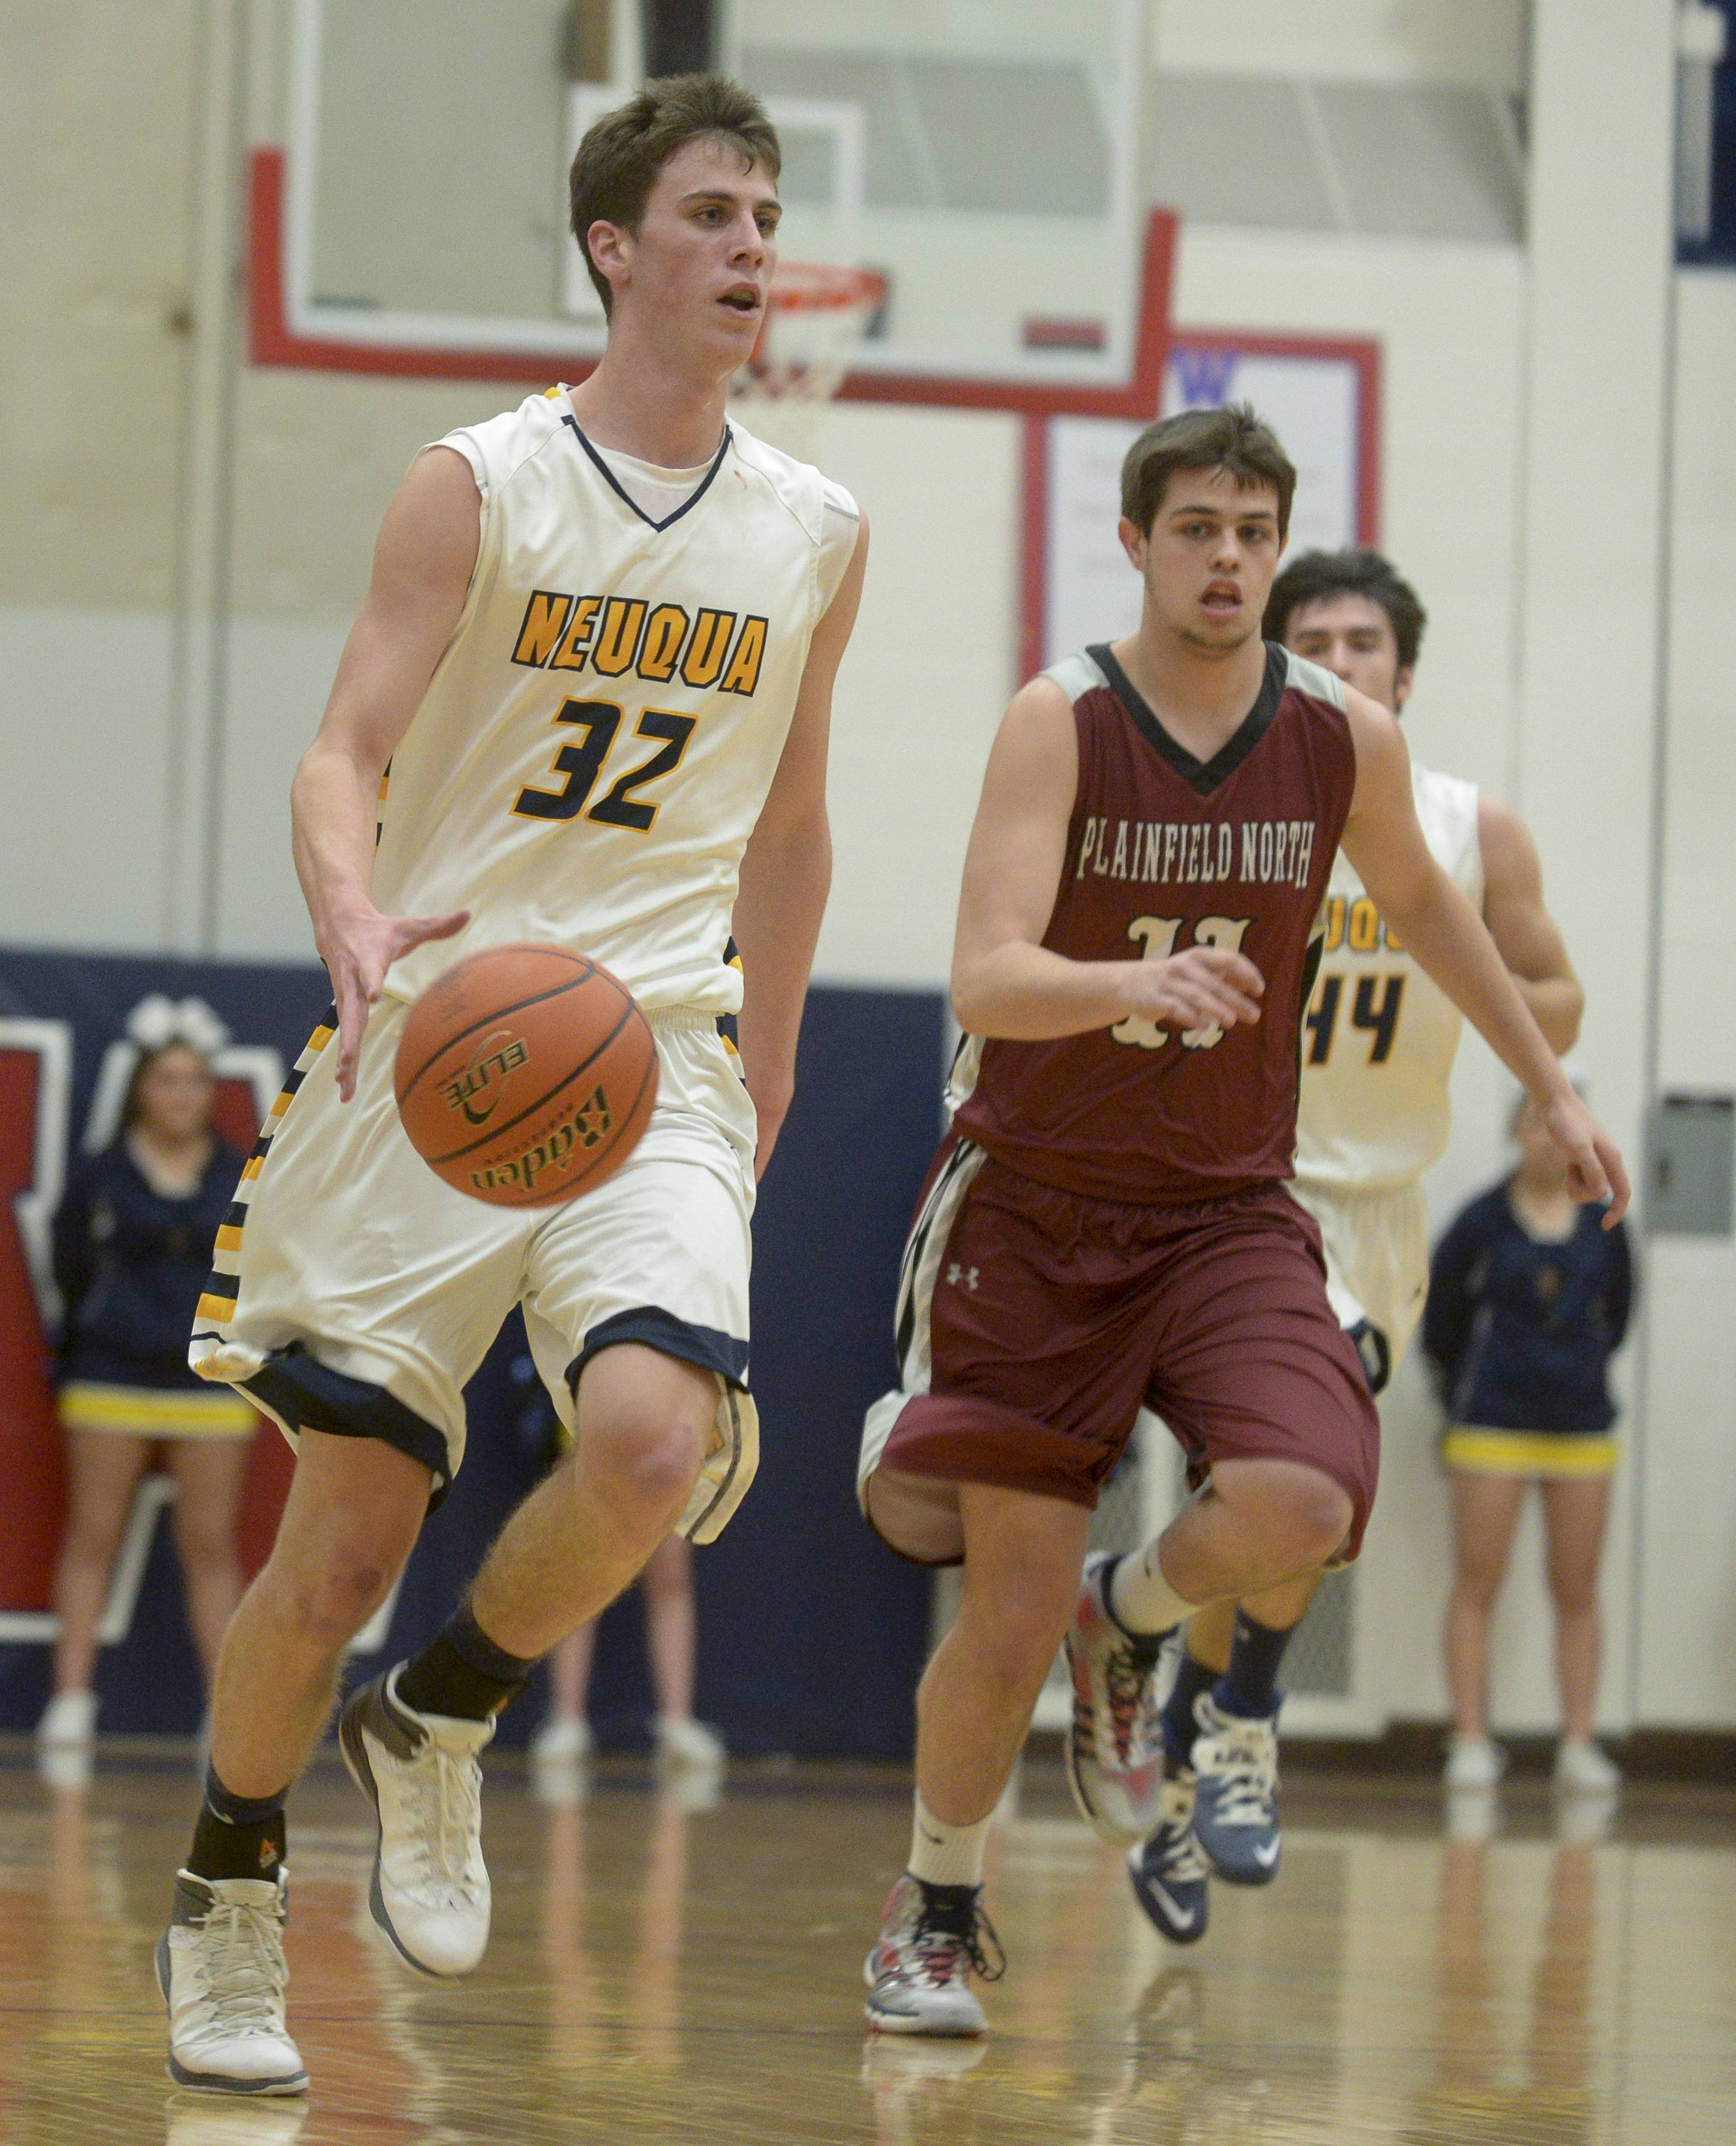 Neuqua Valley vs. Plainfield North boys basketball at Class 4A West Aurora regional semifinal action Wednesday, March 5.